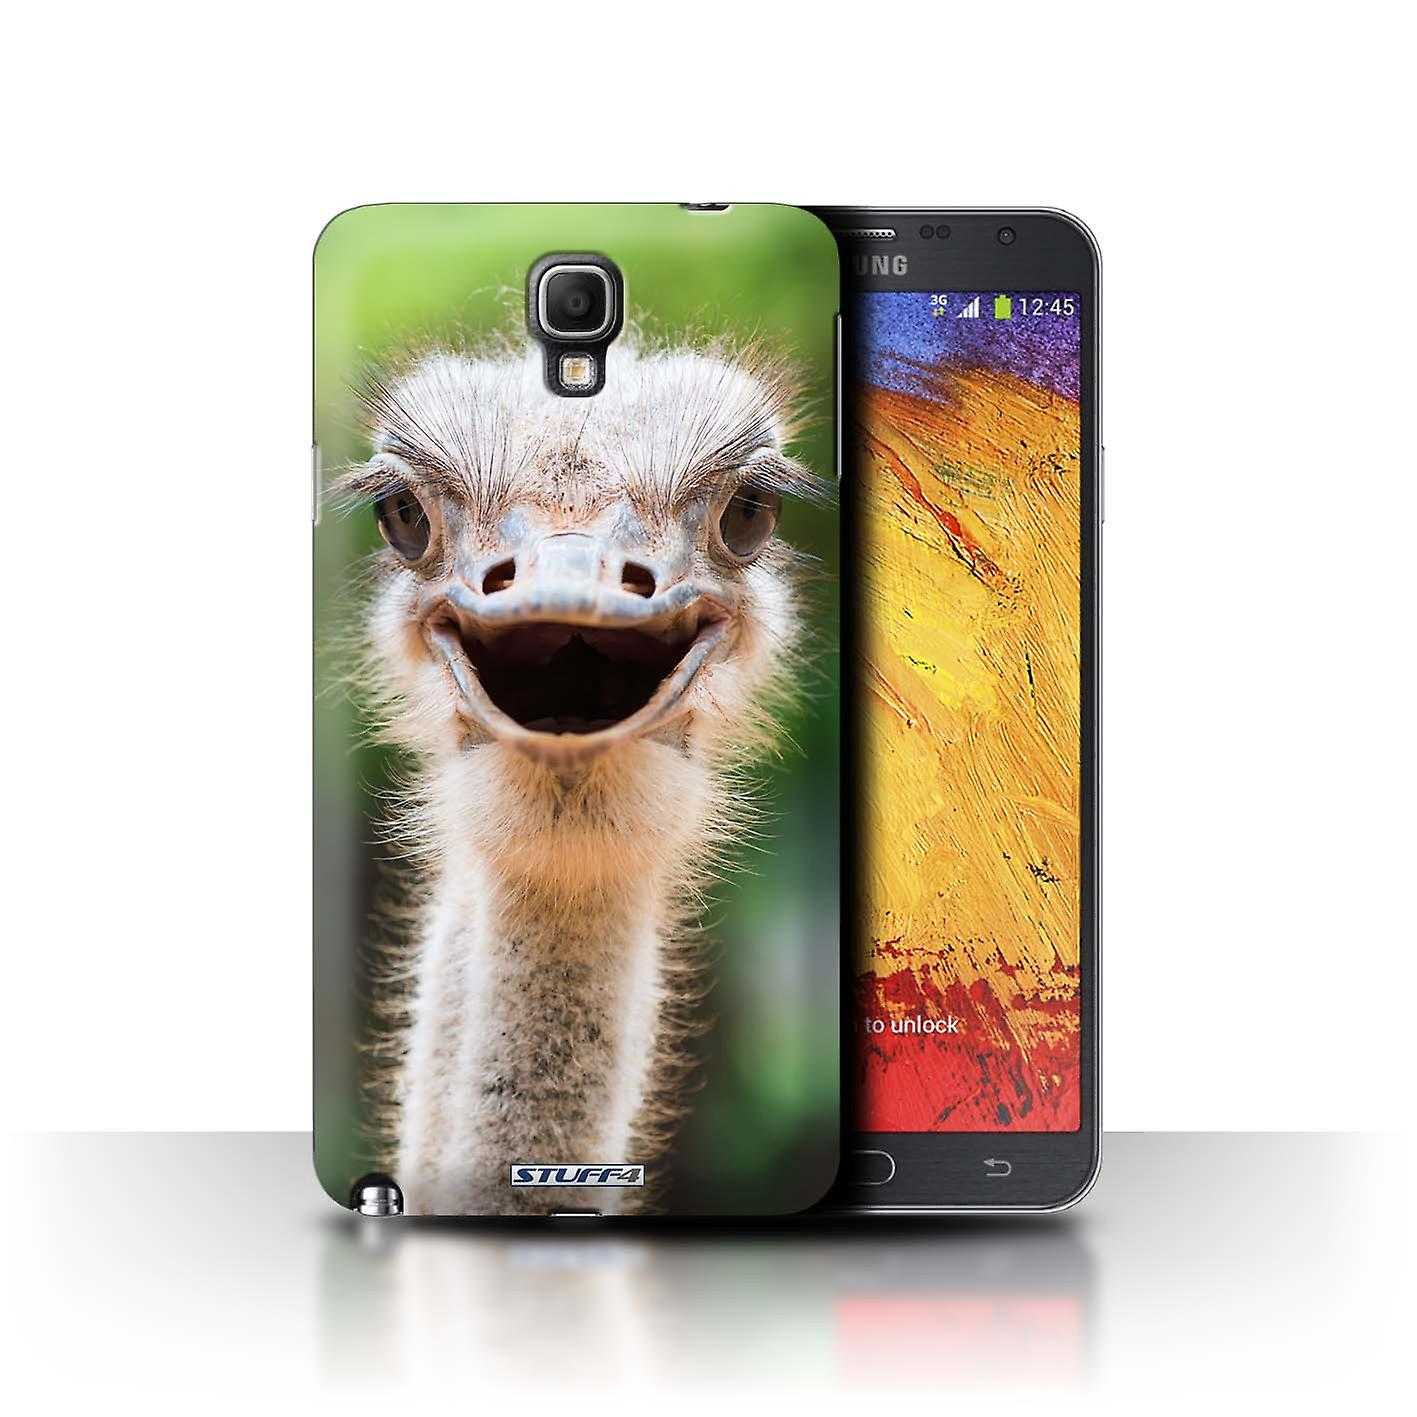 STUFF4 Case/Cover For Samsung Galaxy Note 3 Neo/Ostrich